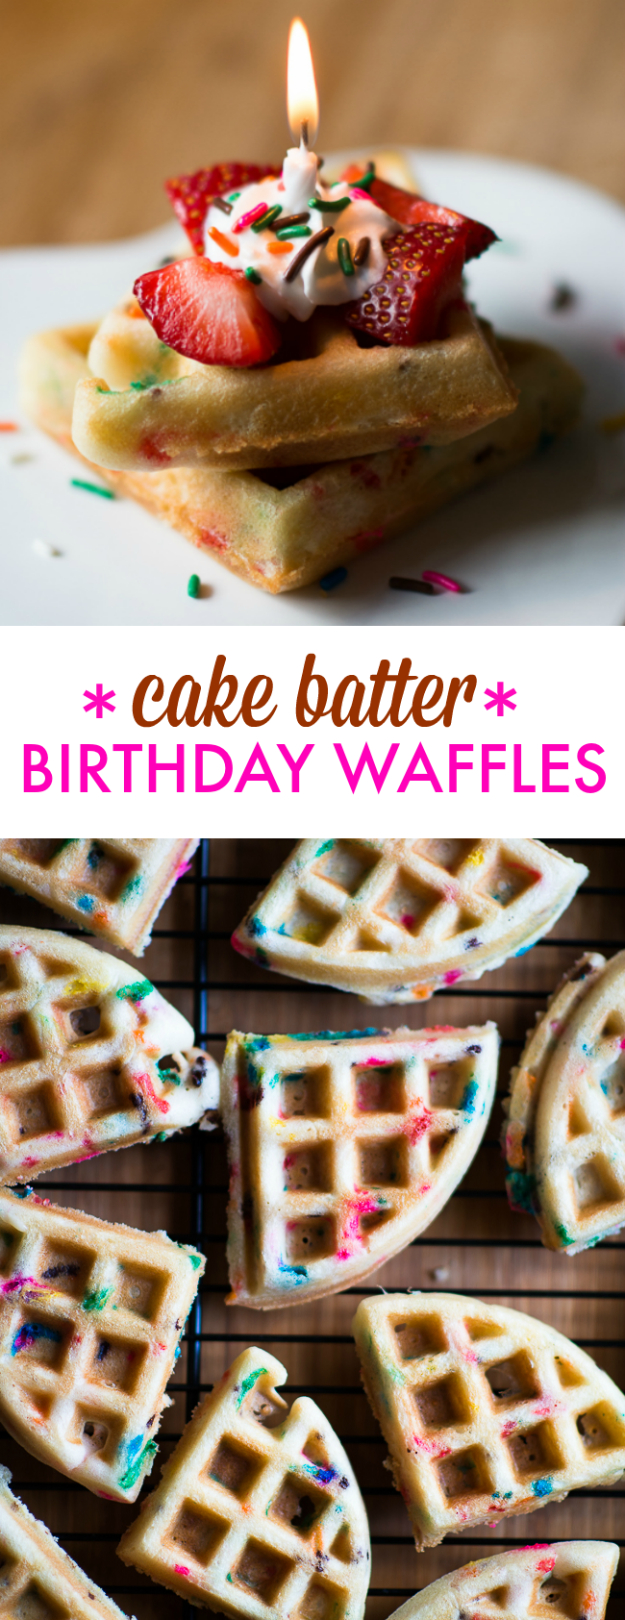 Waffle Iron Hacks and Easy Recipes for Waffle Irons - Cake Batter Birthday Waffles - Quick Ways to Make Healthy Meals in a Waffle Maker - Breakfast, Dinner, Lunch, Dessert and Snack Ideas - Homemade Pizza, Cinnamon Rolls, Egg, Low Carb, Sandwich, Bisquick, Savory Recipes and Biscuits #diy #waffle #hacks